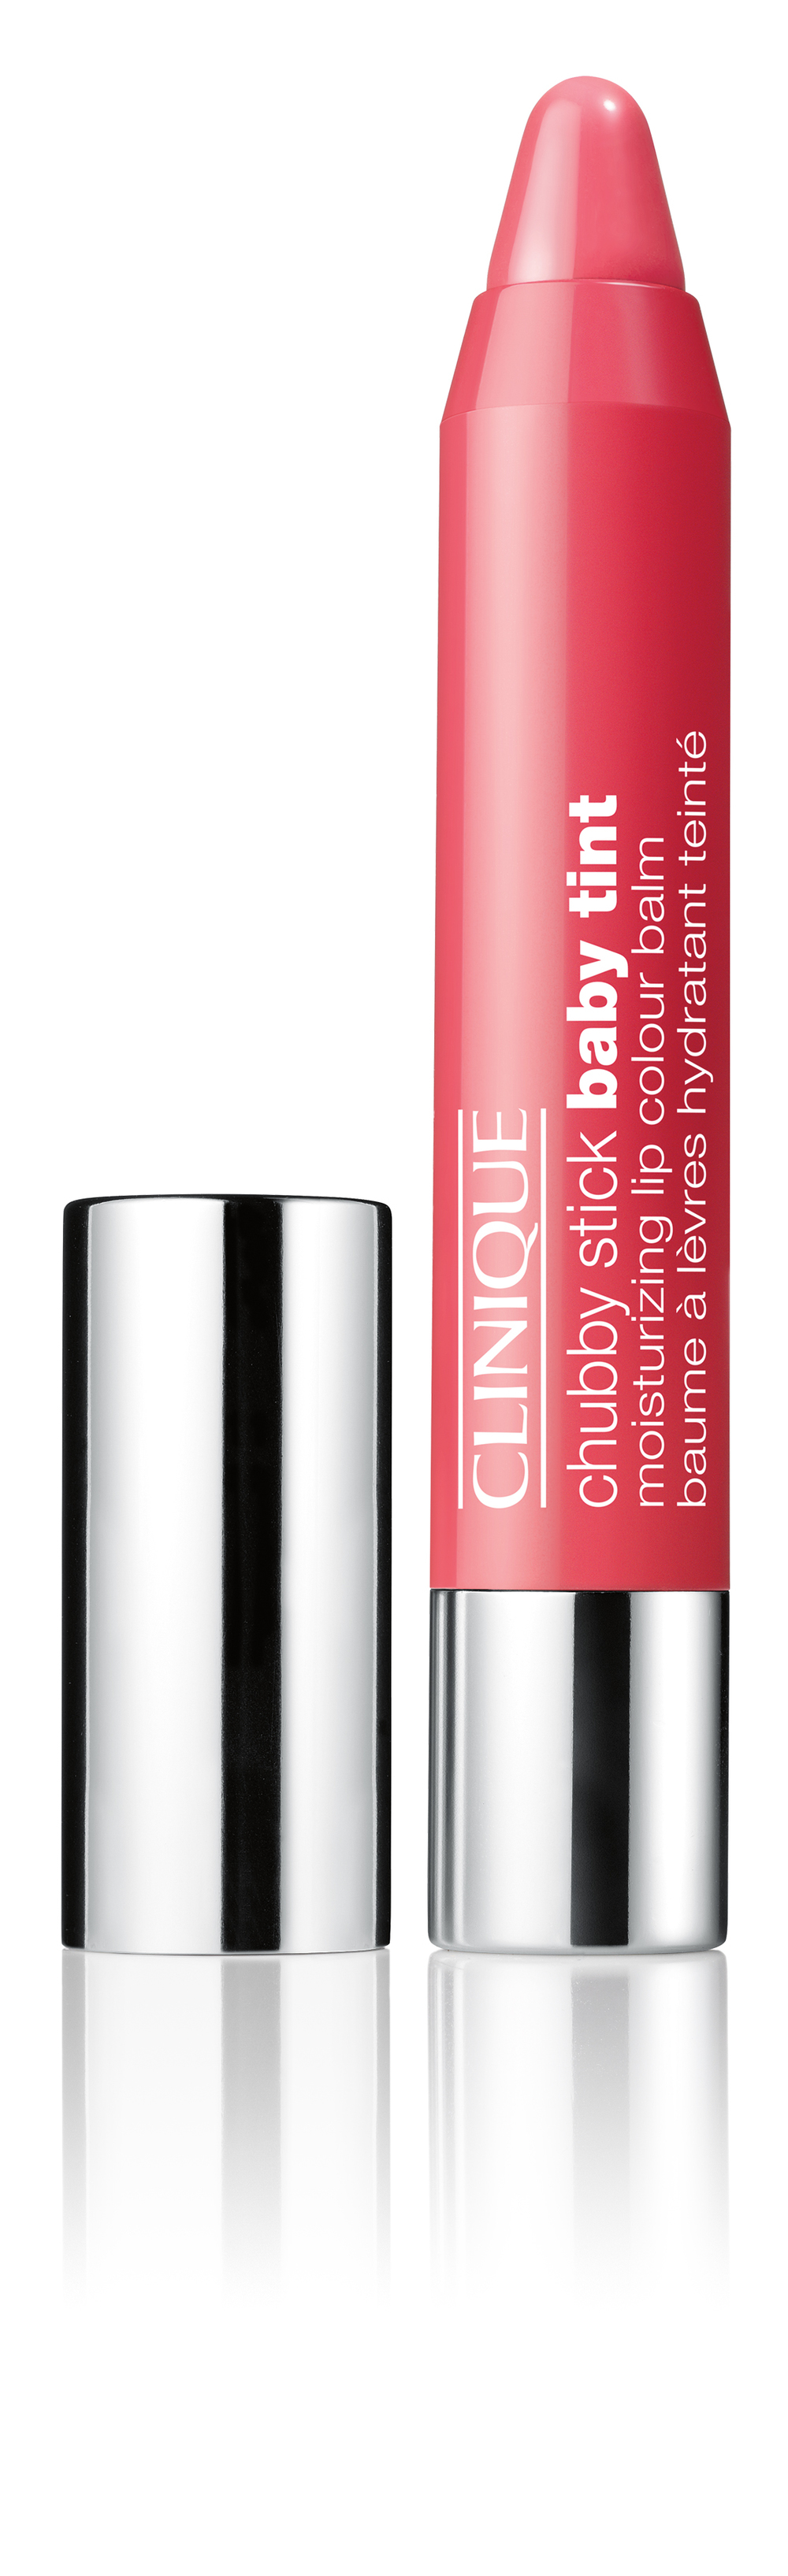 CLINIQUE Chubby Stick Baby Tint Moisturizing Lip Colour Balm COMING UP ROSY INTL ICON.jpg